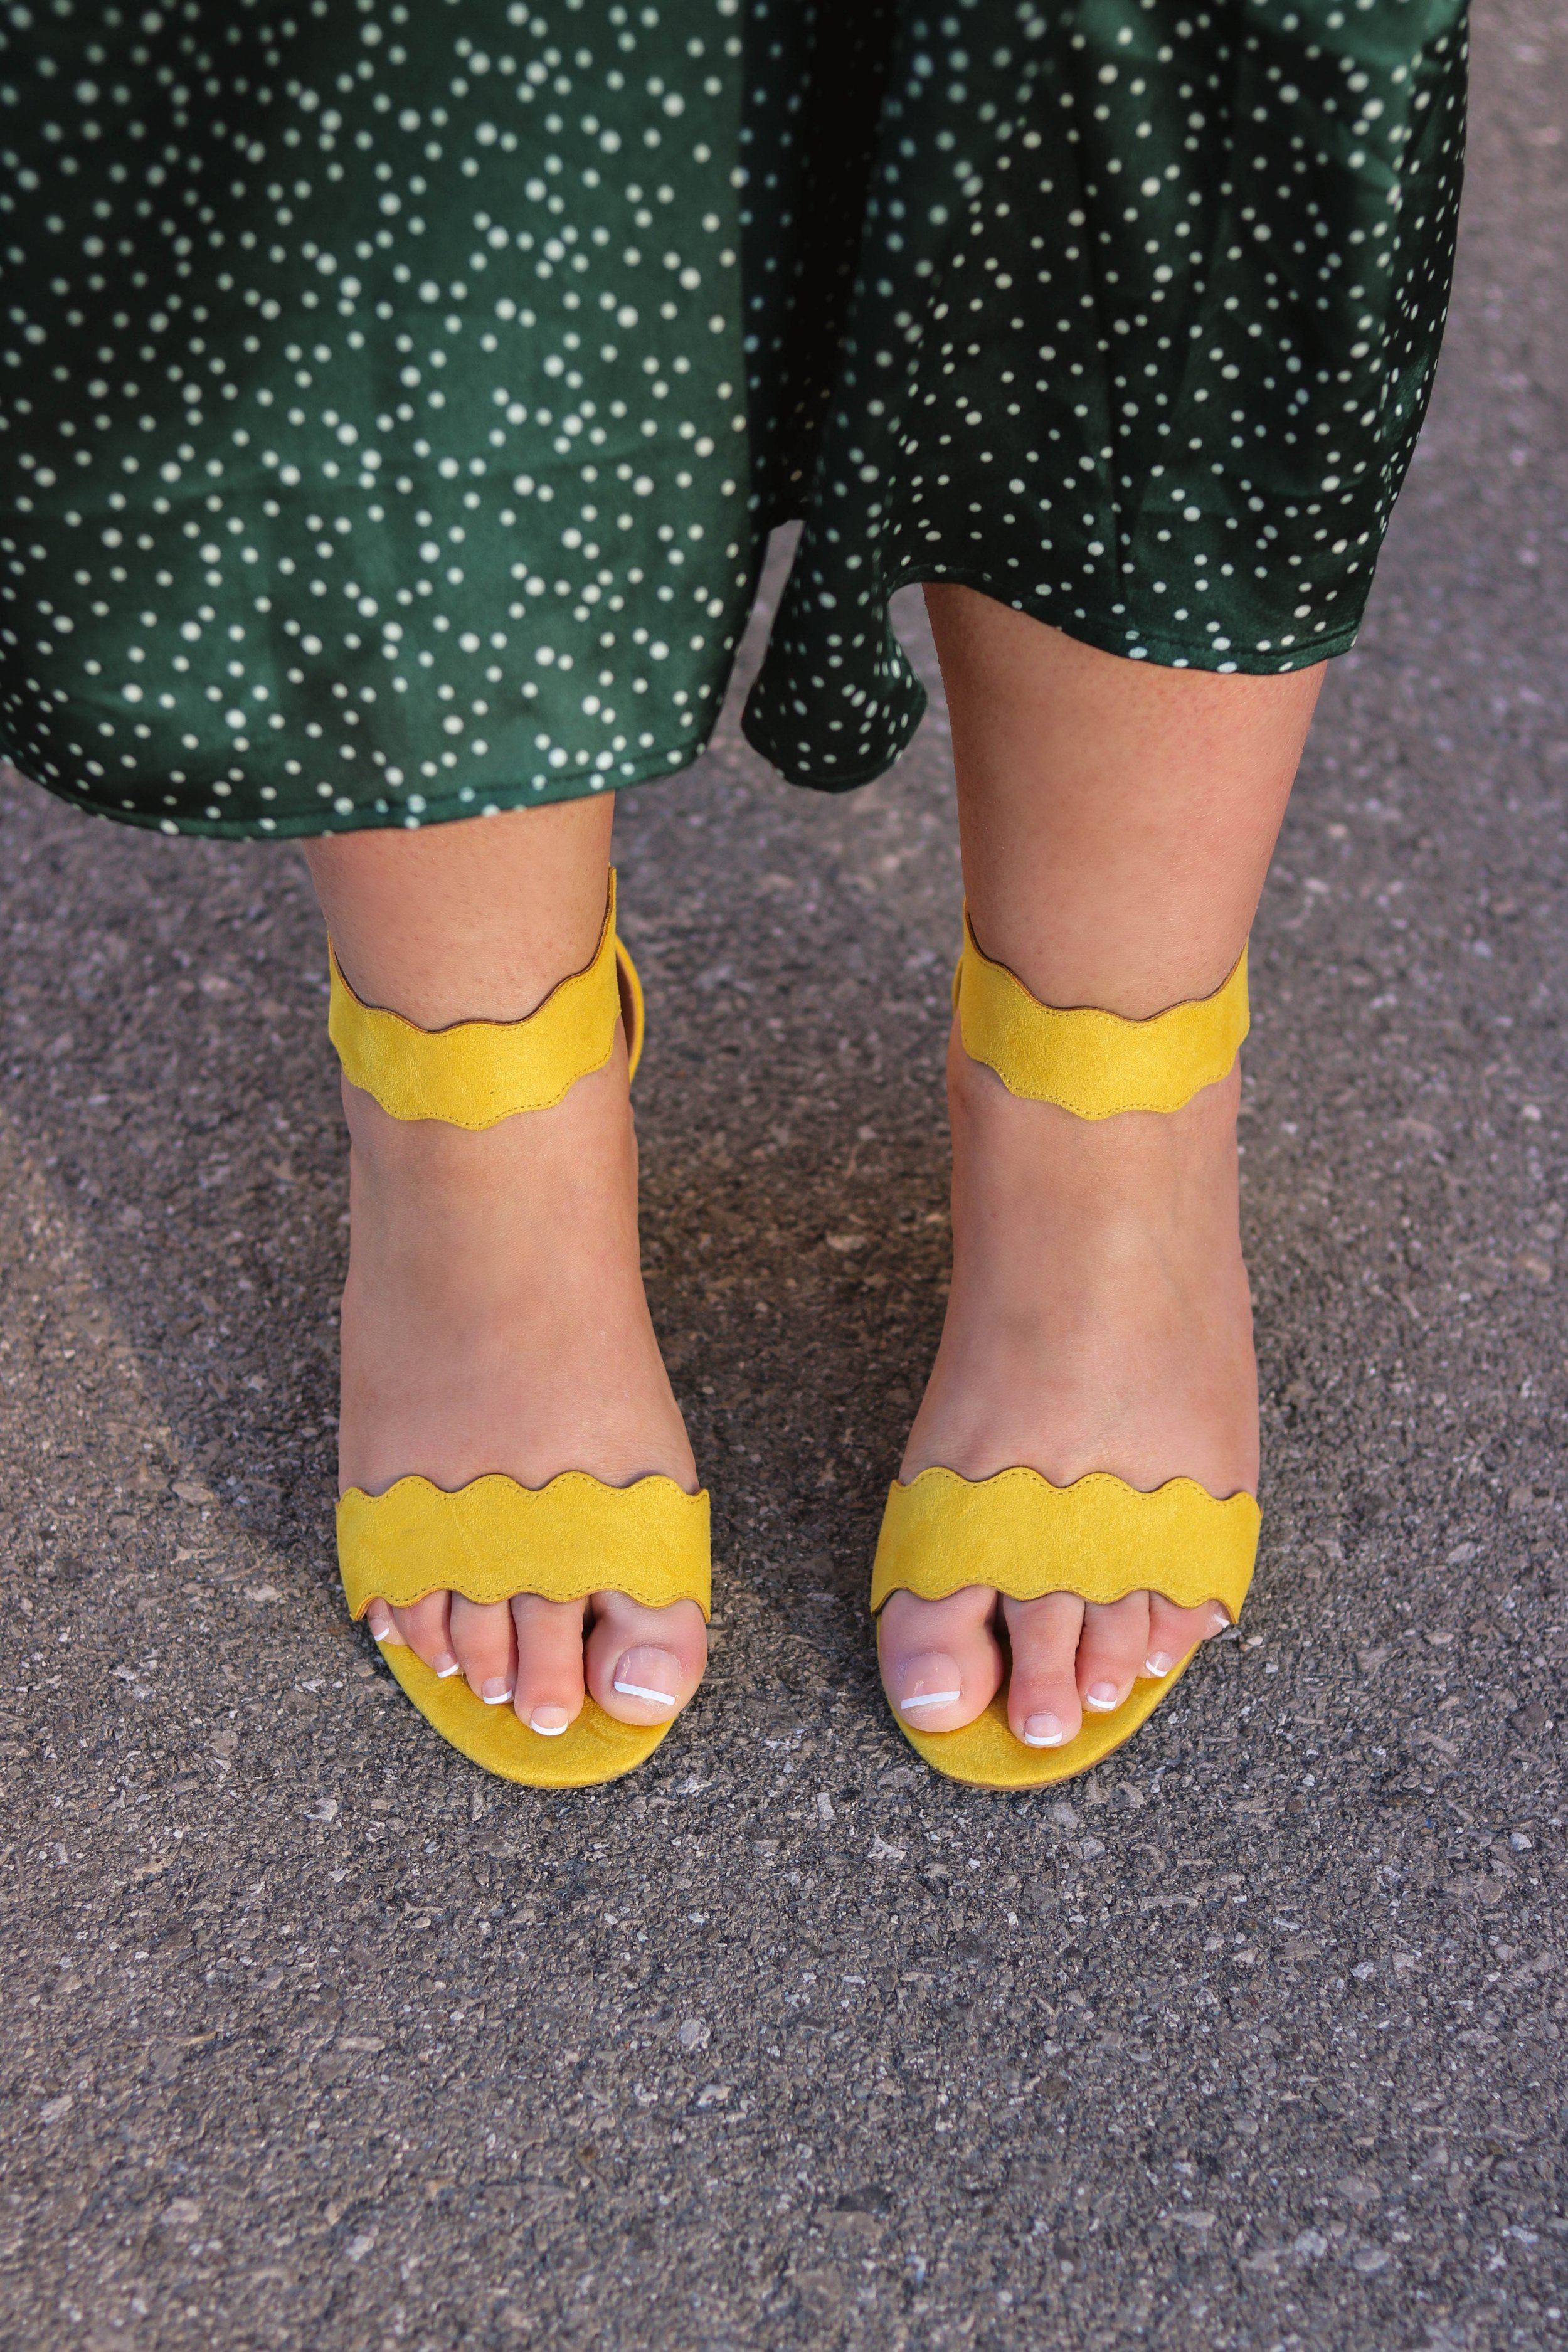 Yellow sandals plus size fashion addition elle wide fit shoes - Sara Sohail (The Prep Gal)